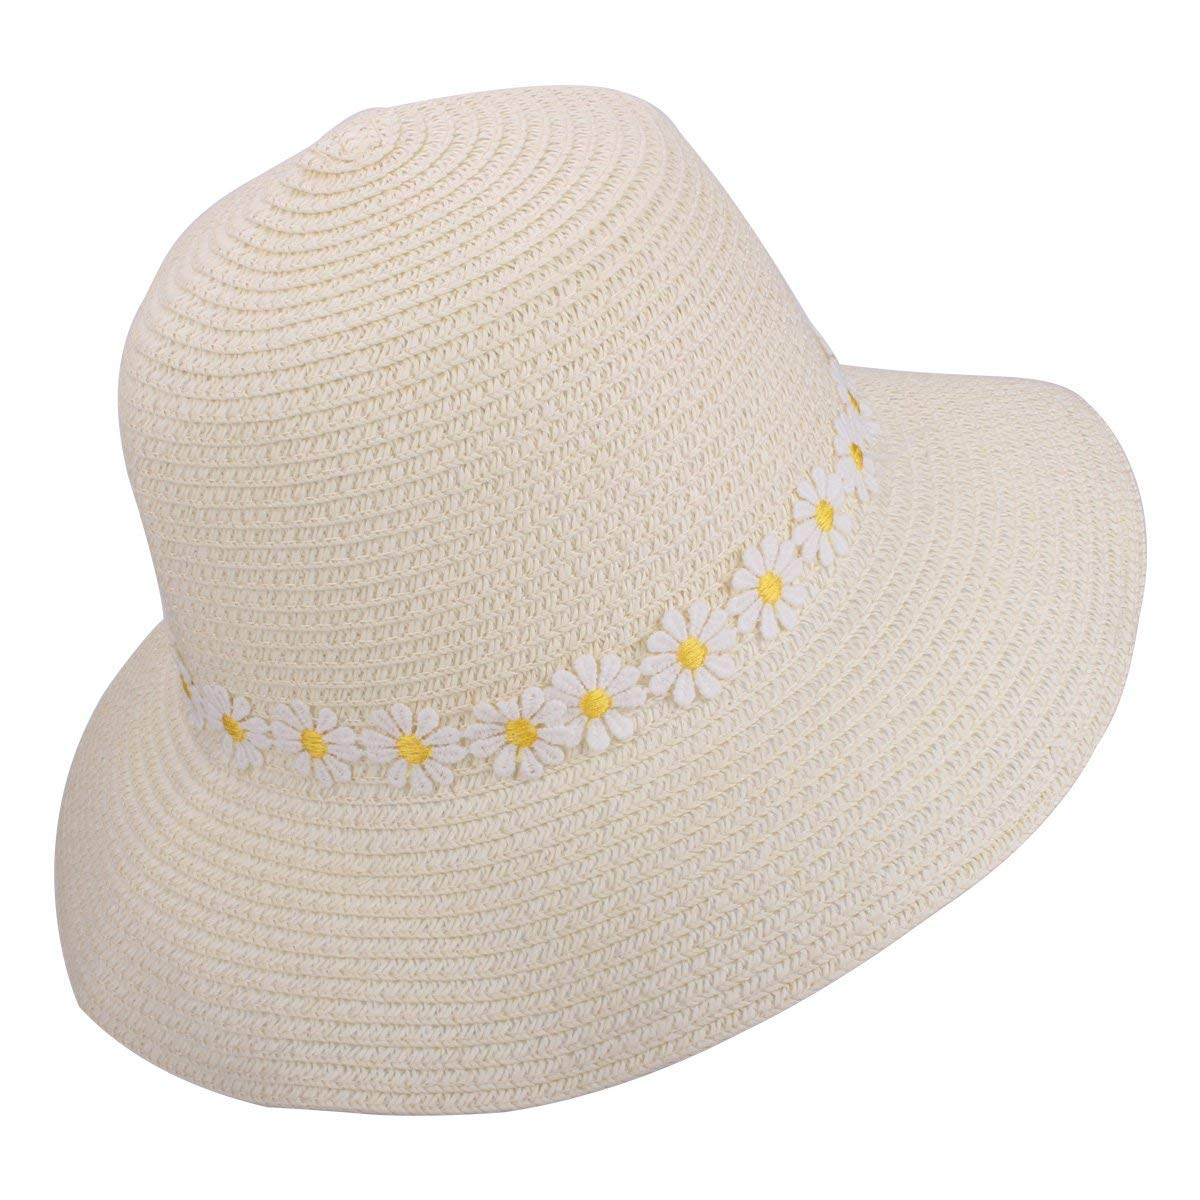 8d776af186c Get Quotations · Andeker Packable UPF Straw Sunhat Women Summer Beach Wide  Brim UV Protection Floppy Fedora Foldable Travel